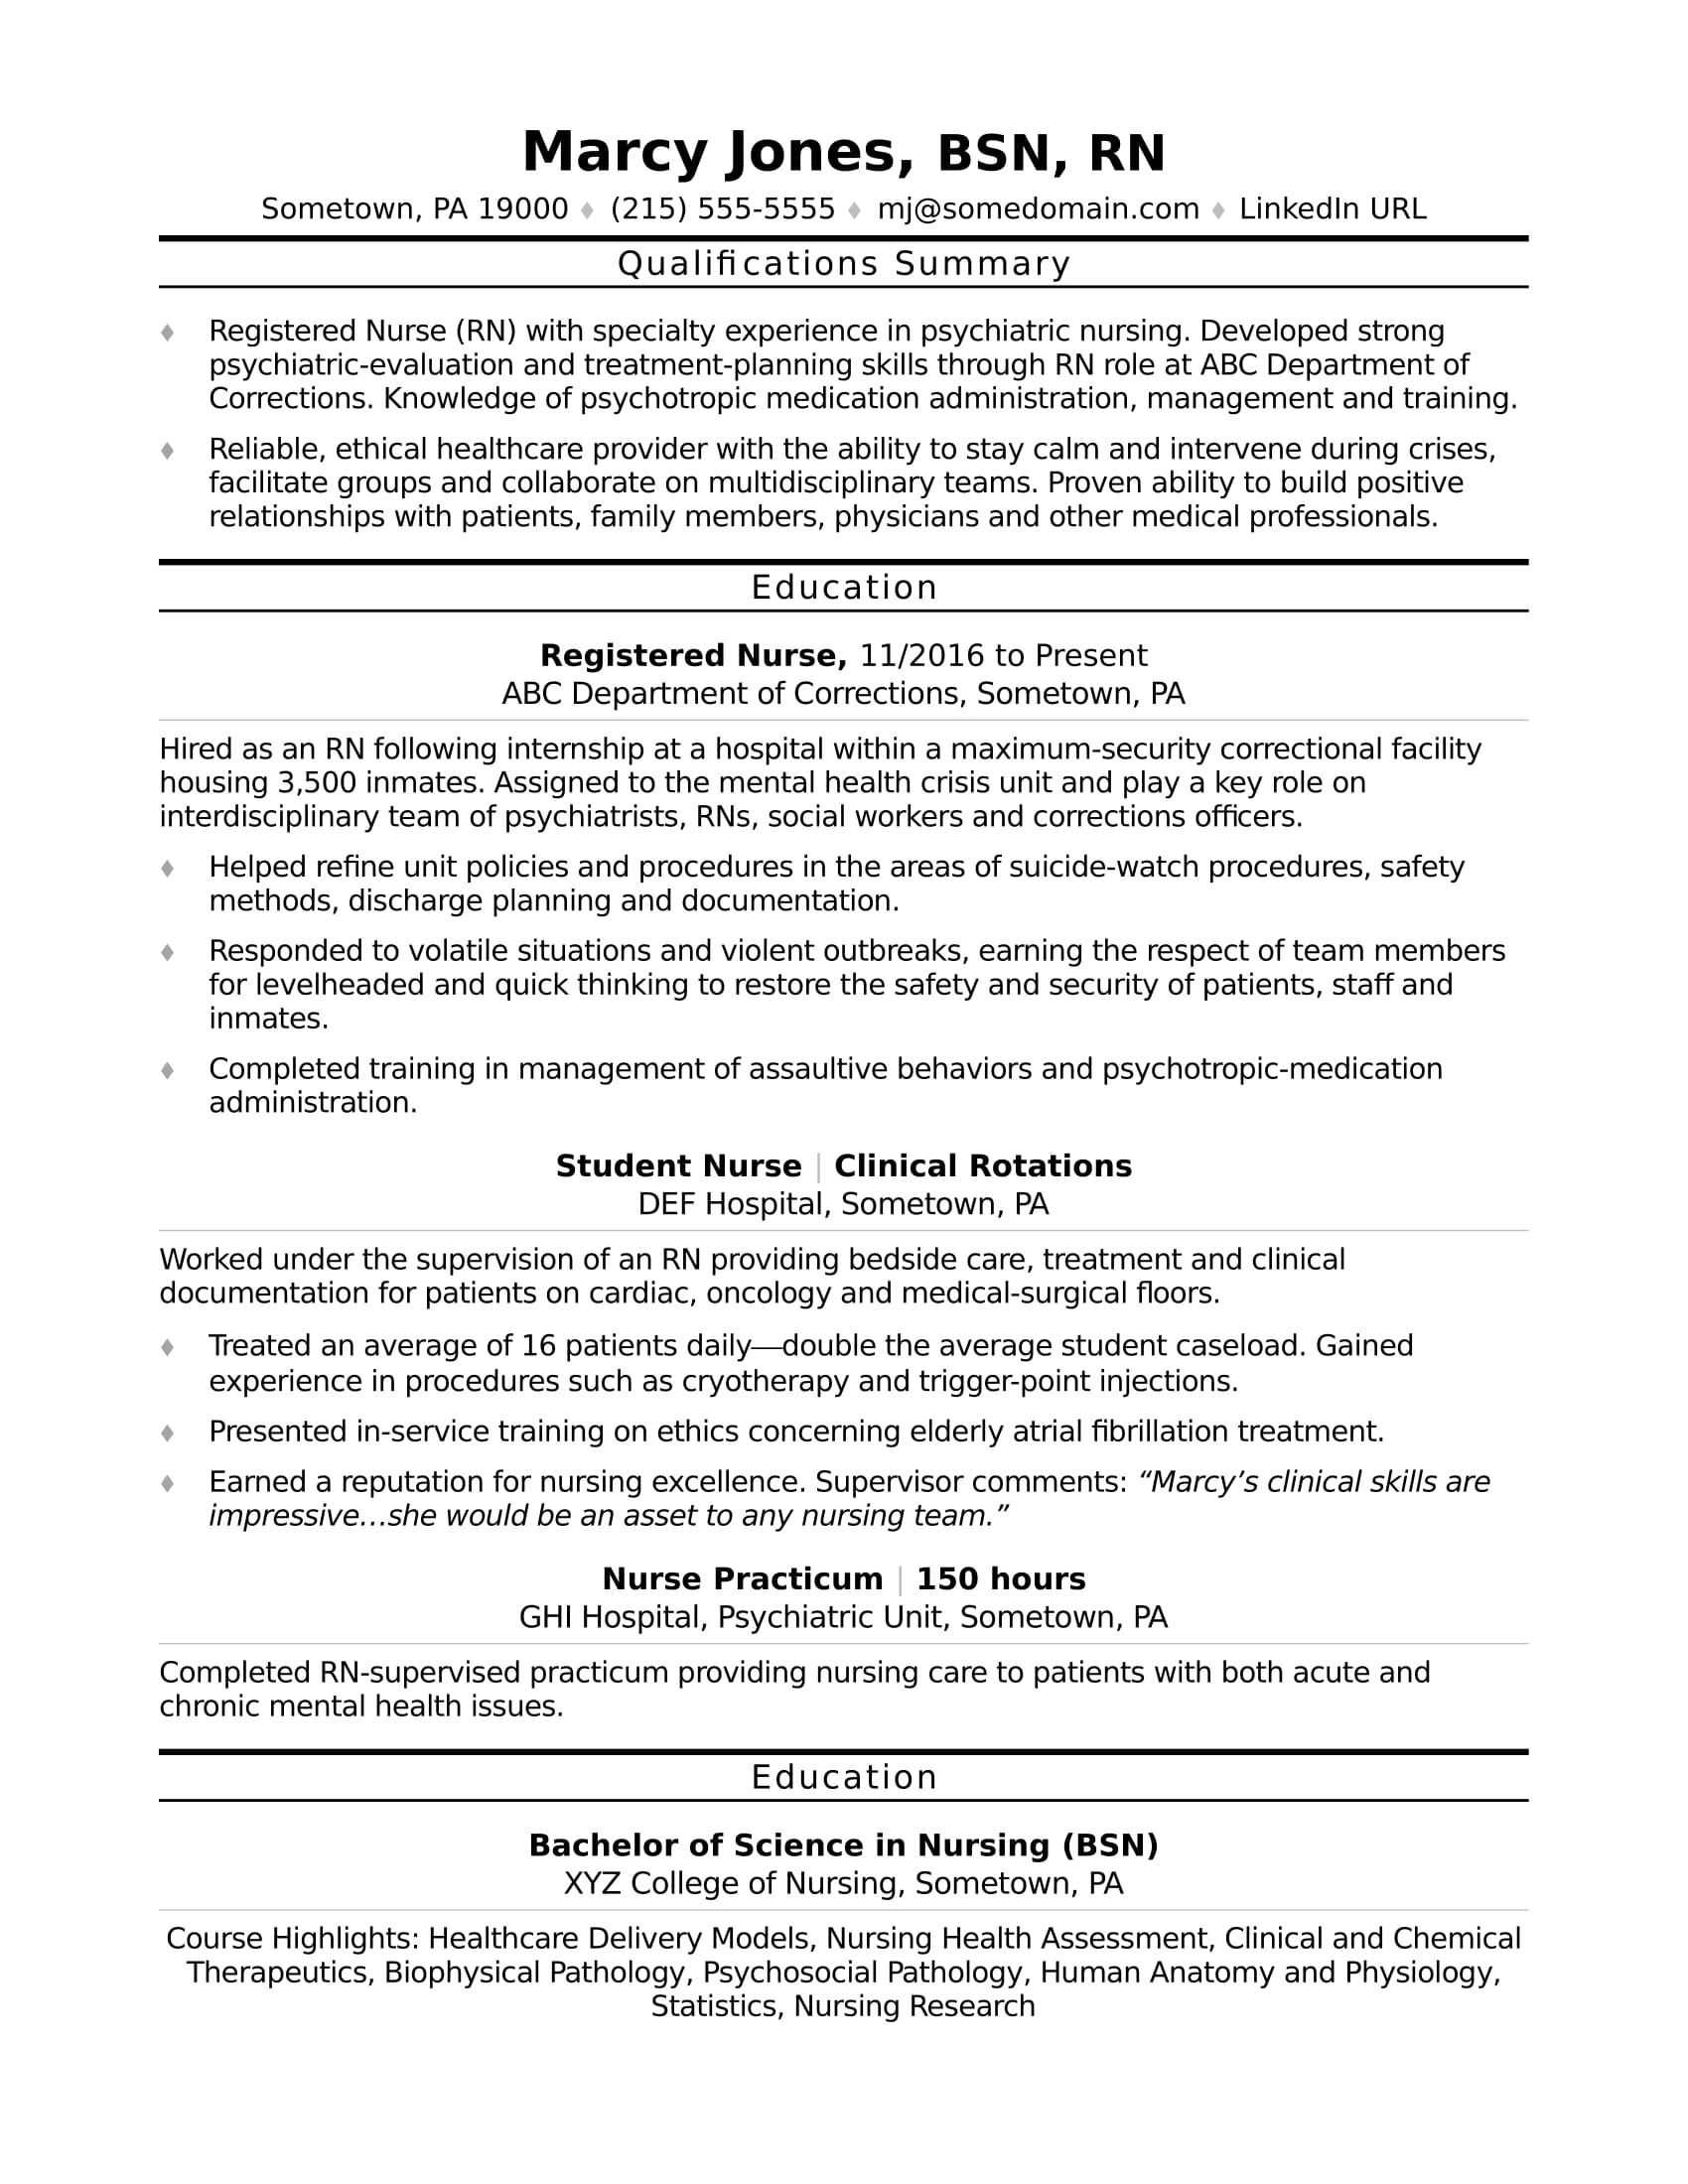 registered nurse rn resume sample monster of entry level executive samples experience Resume Sample Of A Registered Nurse Resume